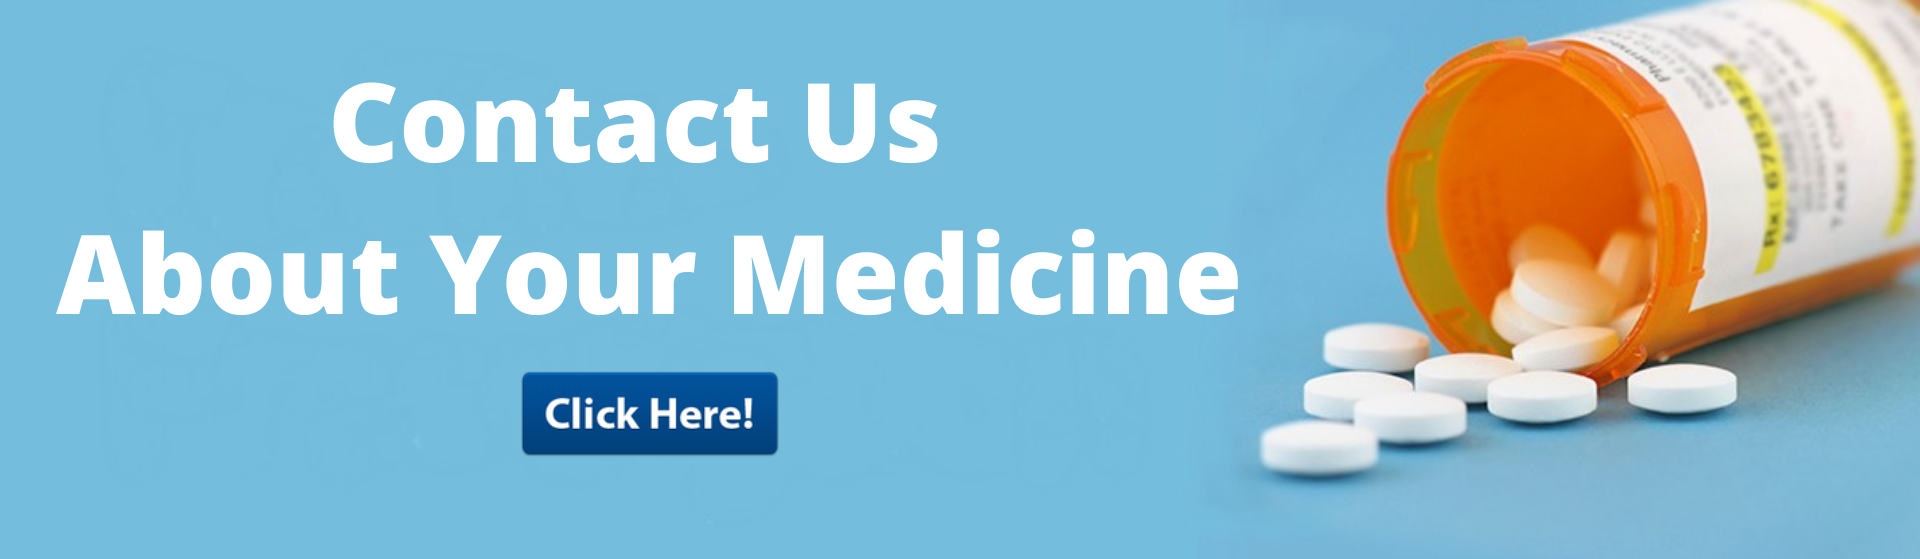 Contact Us About Your Medicine